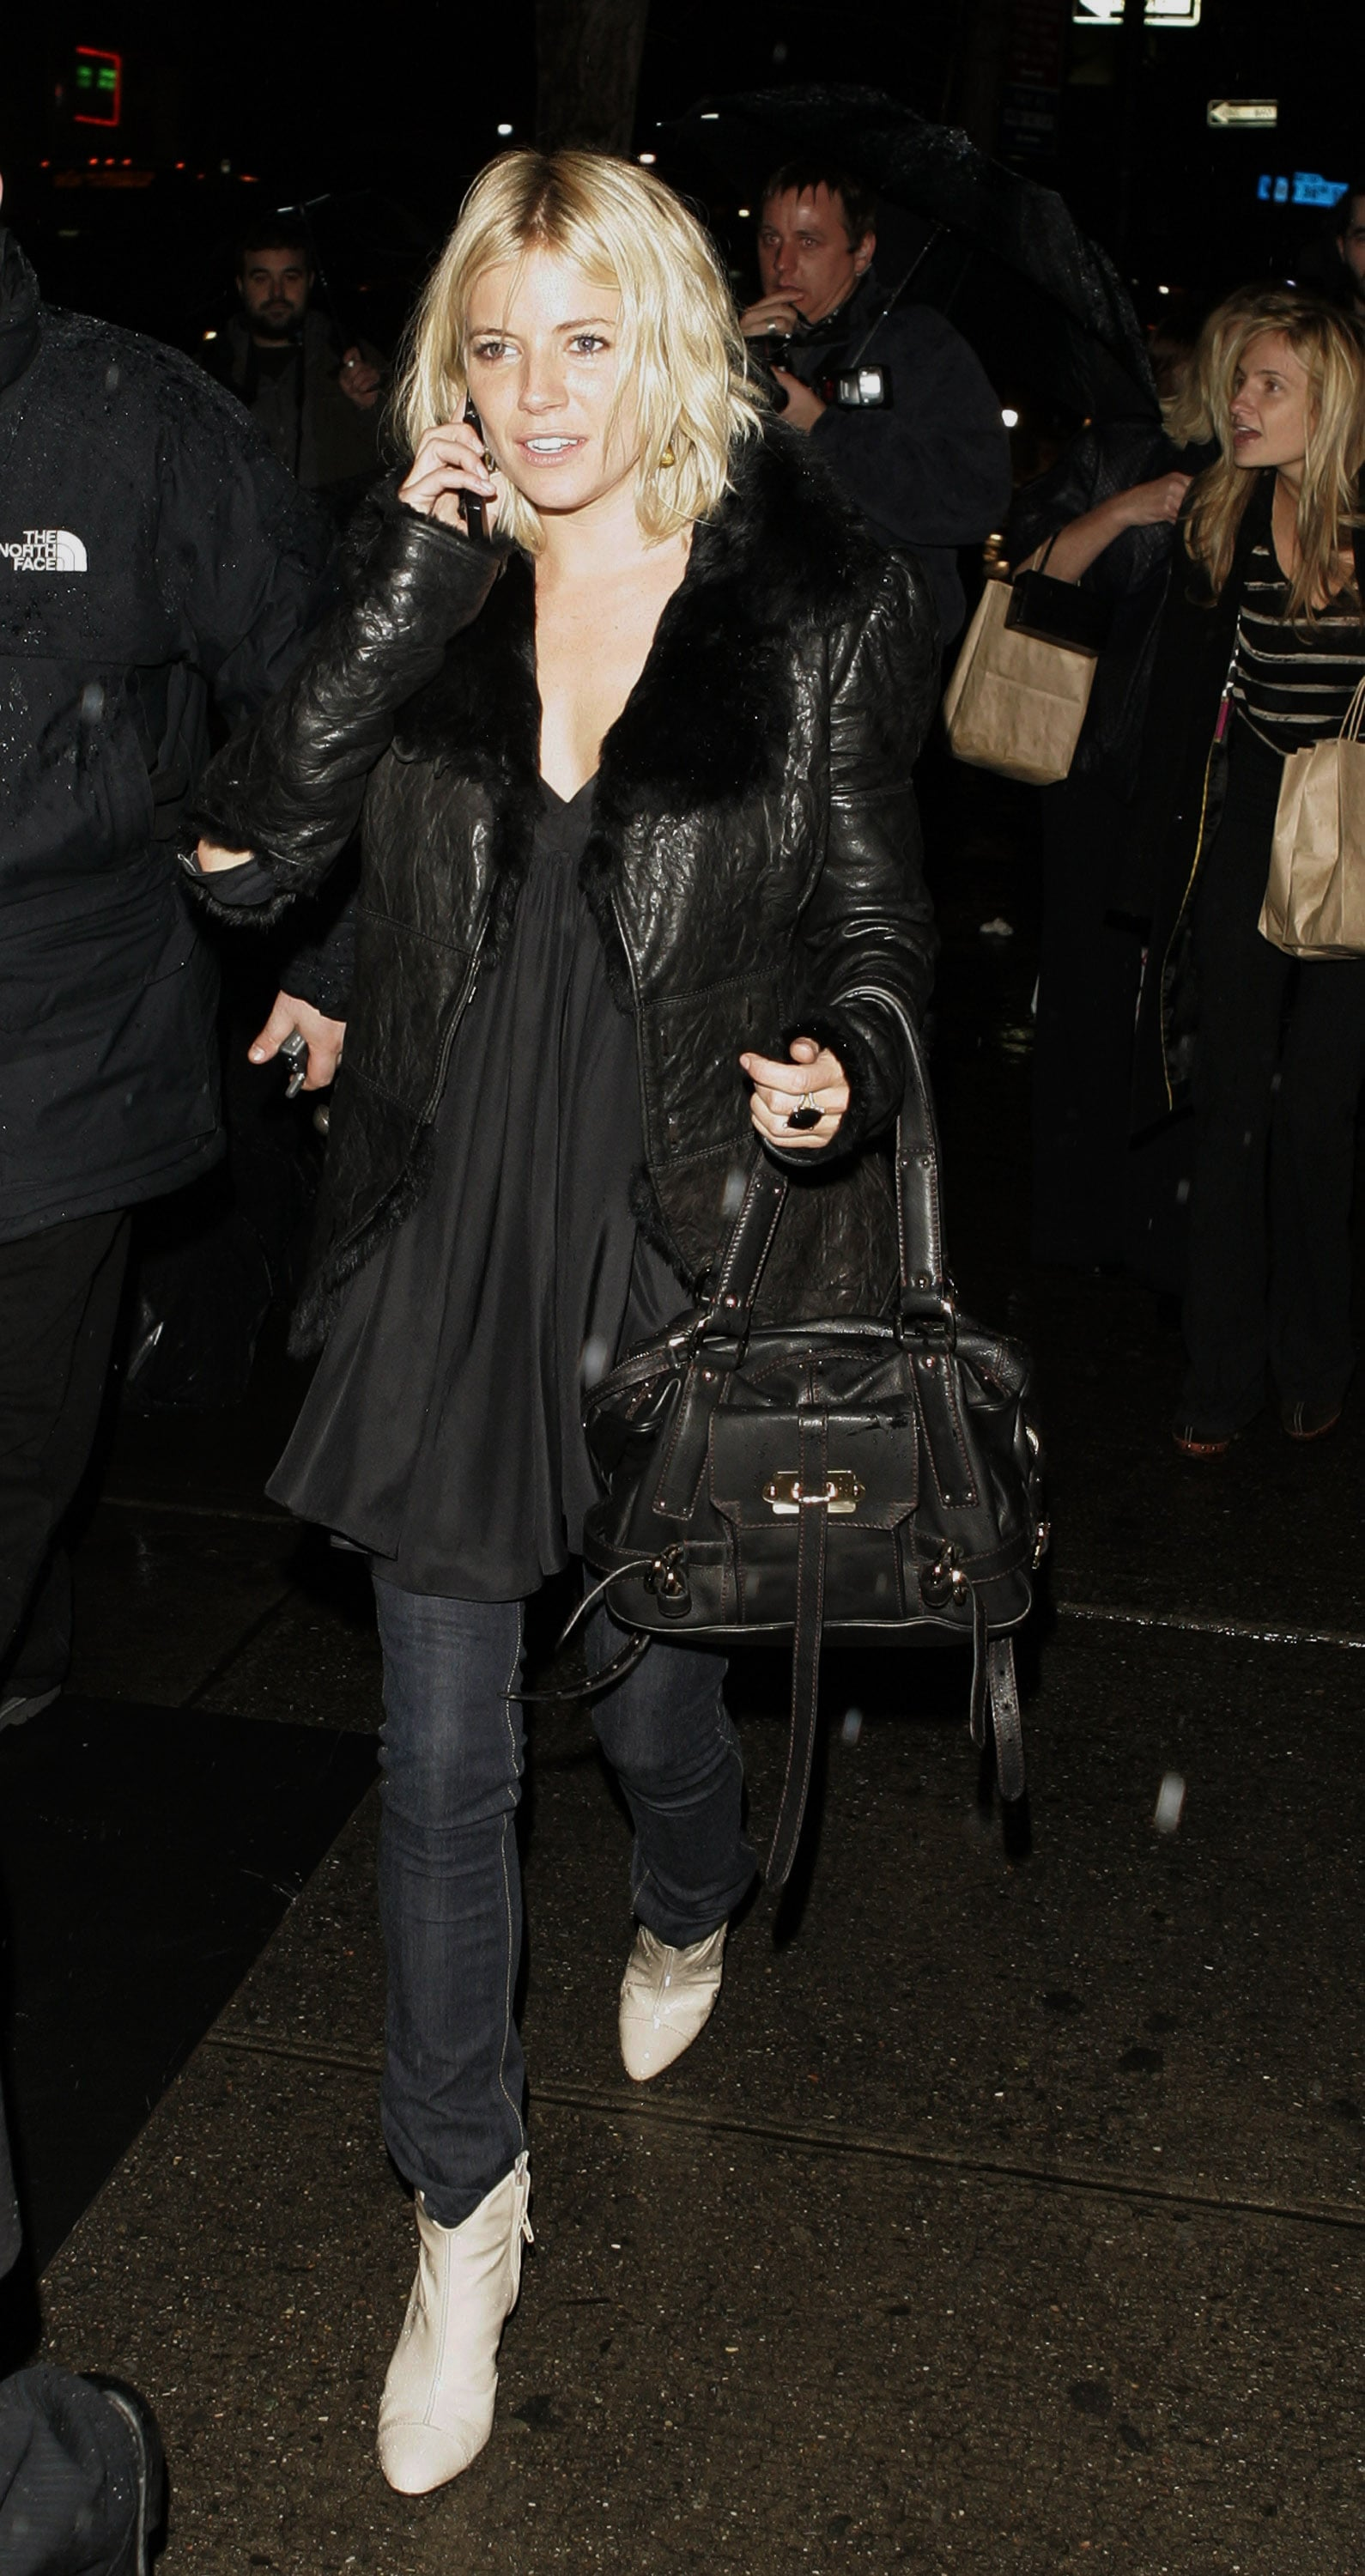 She joined the style crew for Fall Fashion Week in 2007.